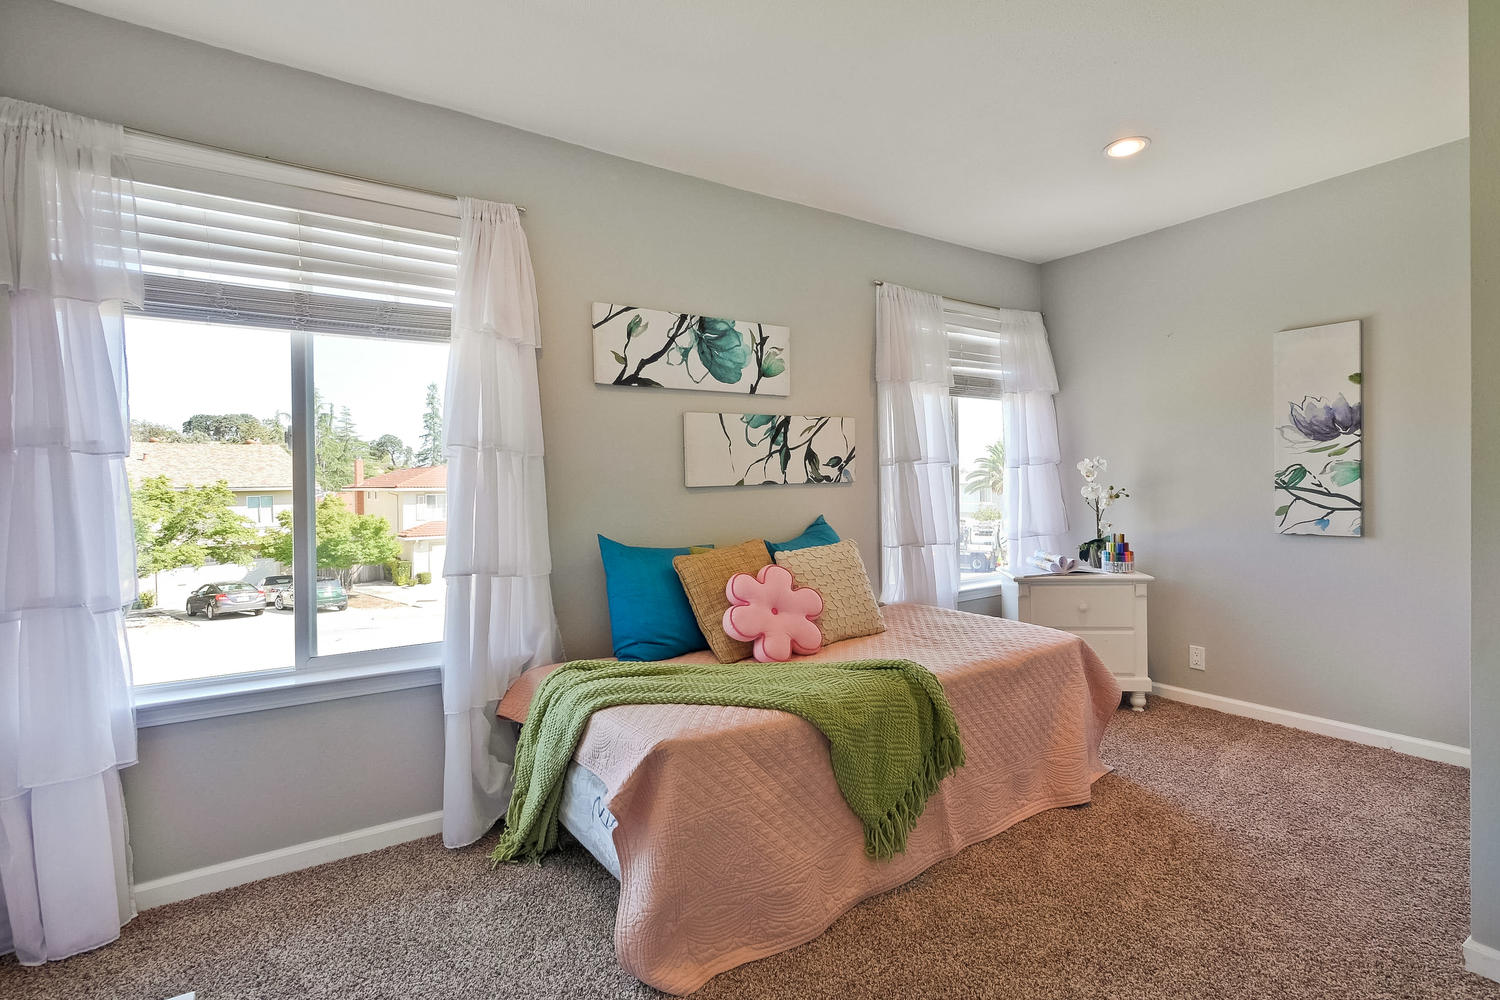 820 Colleen Dr San Jose CA-large-059-68-Bedroom-1500x1000-72dpi